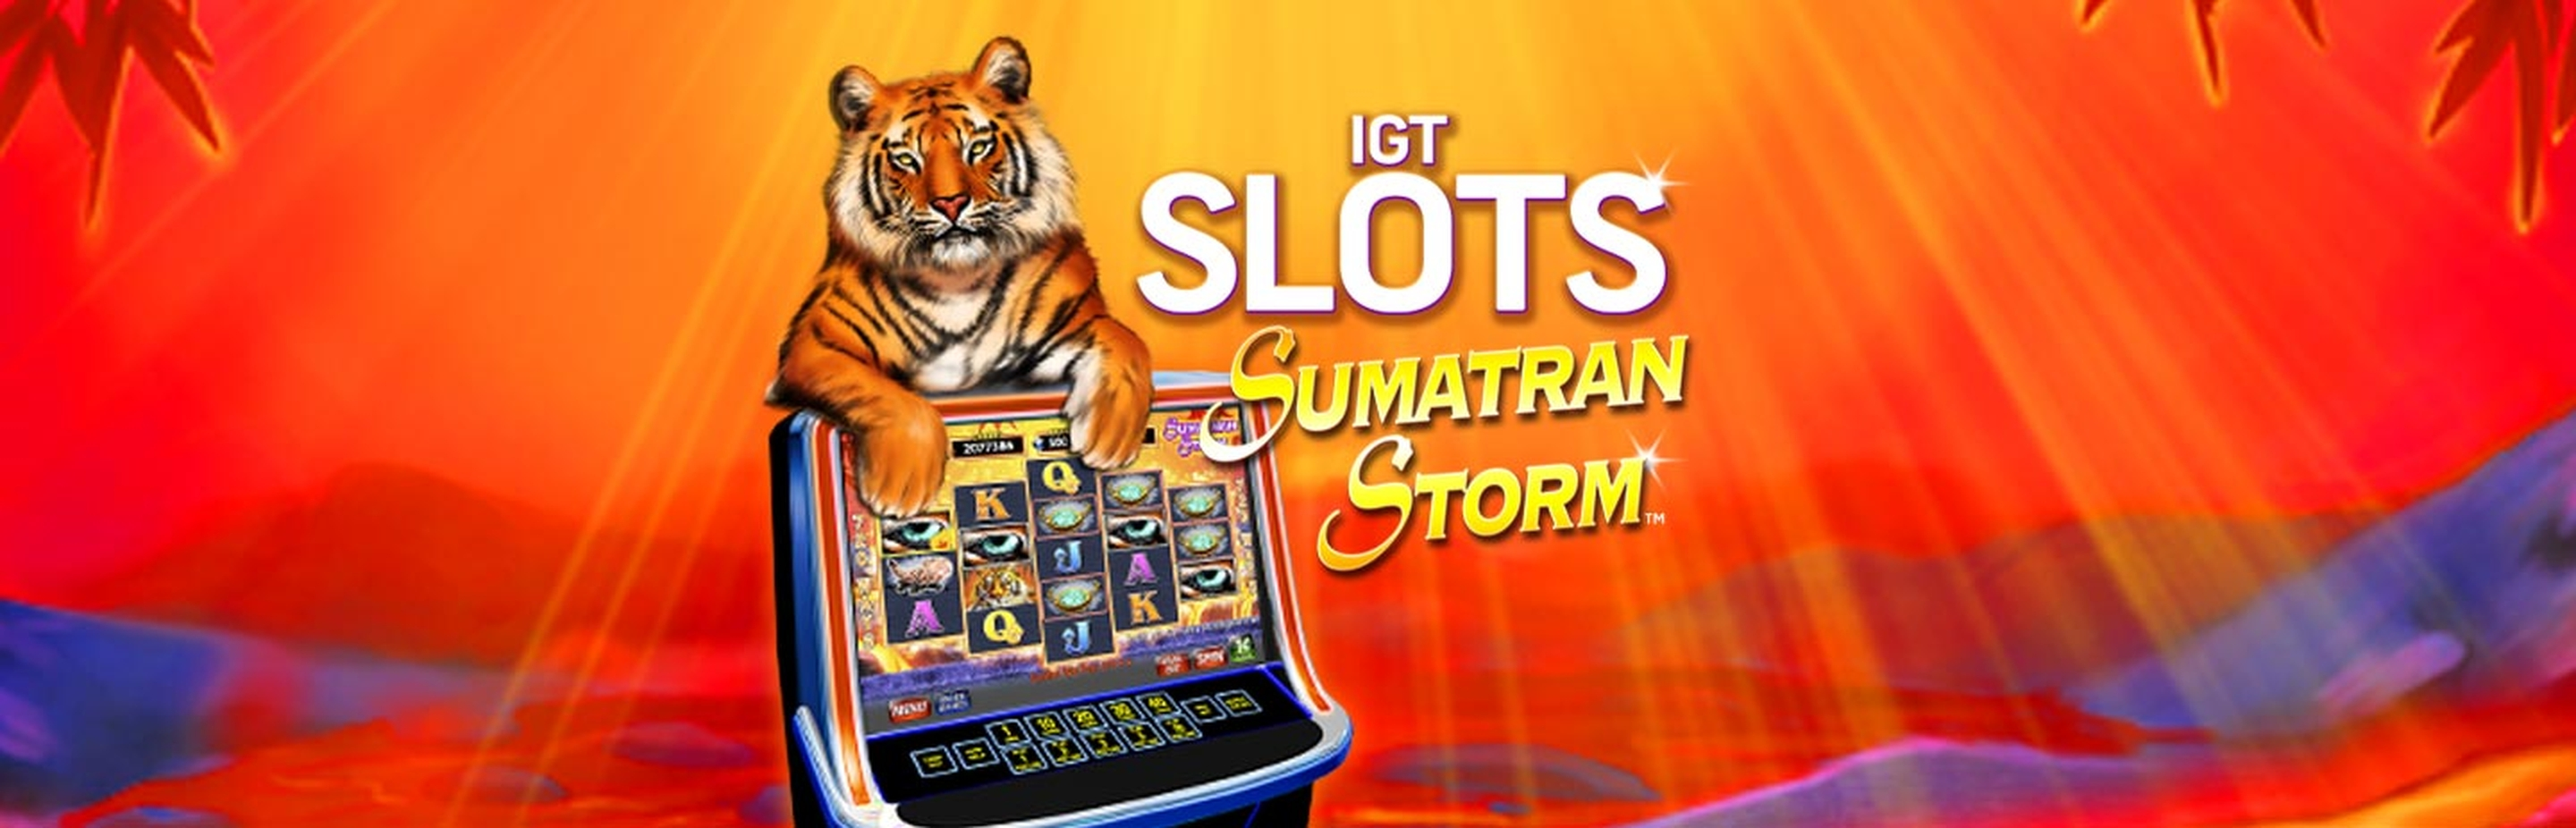 The Sumatran Storm Online Slot Demo Game by IGT